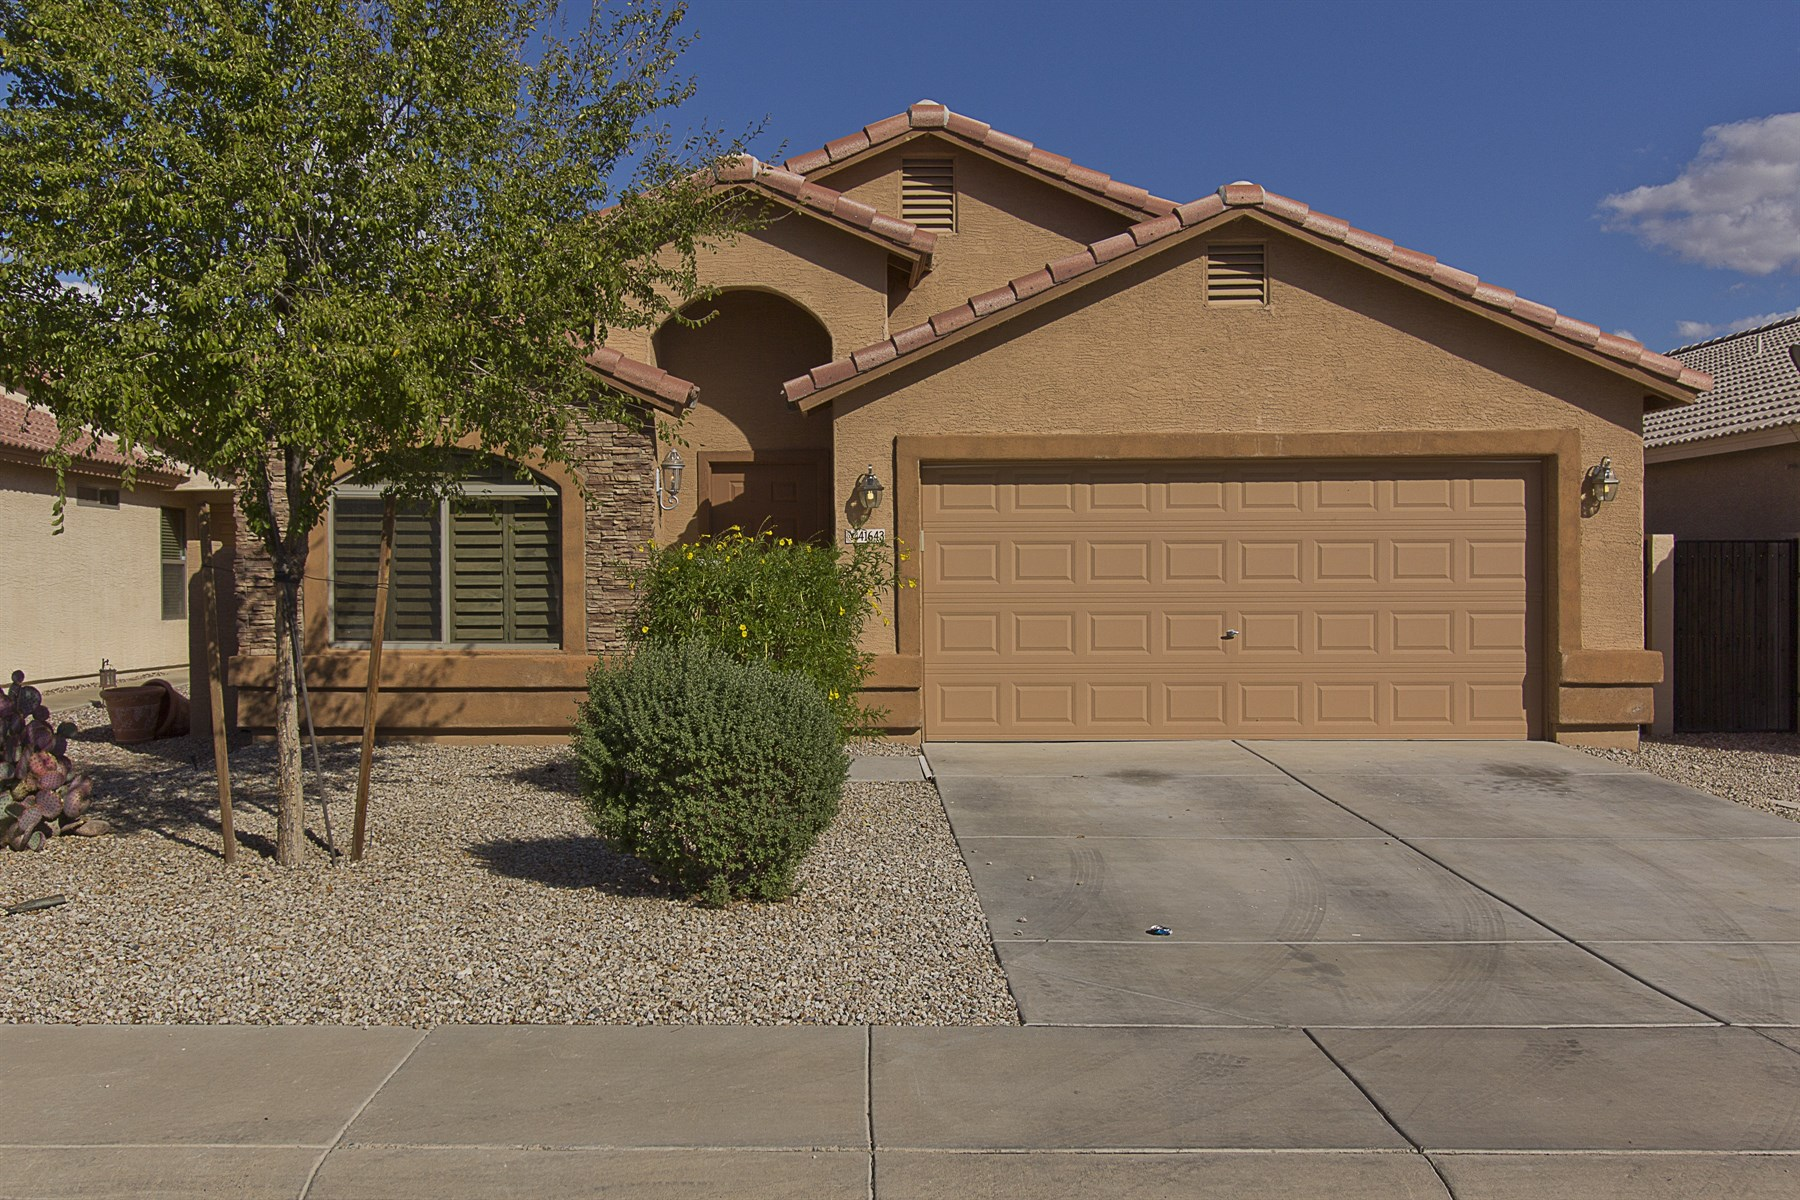 Single Family Home for Sale at Lovely home in a wonderful neighborhood 41643 N Ranch Dr San Tan Valley, Arizona 85140 United States